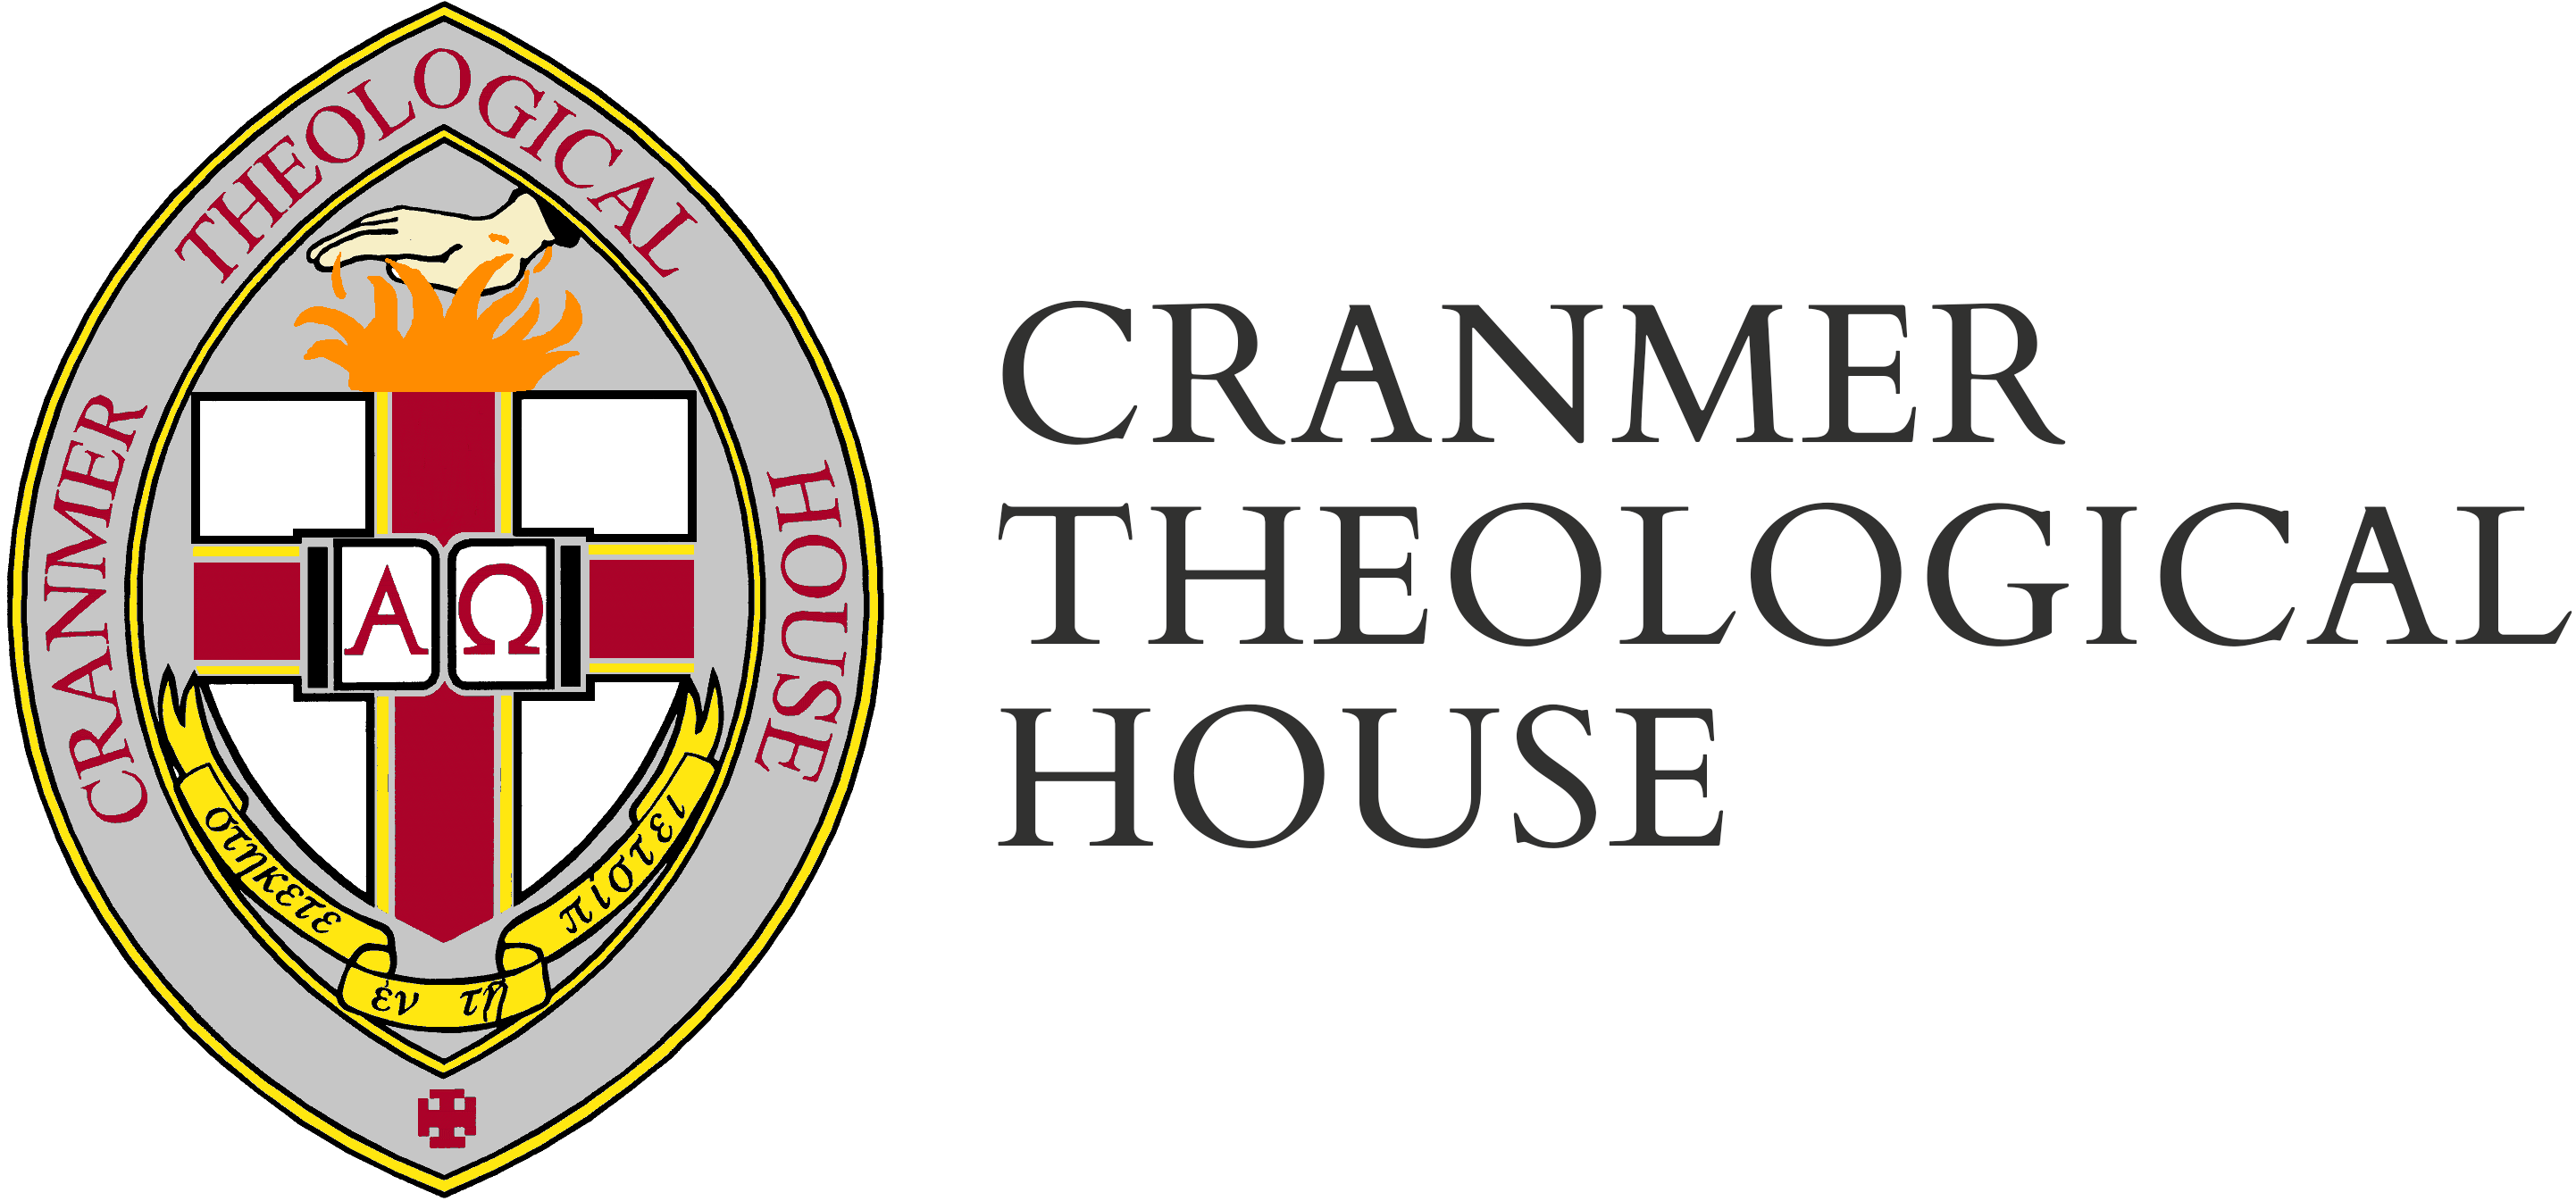 Cranmer Theological House